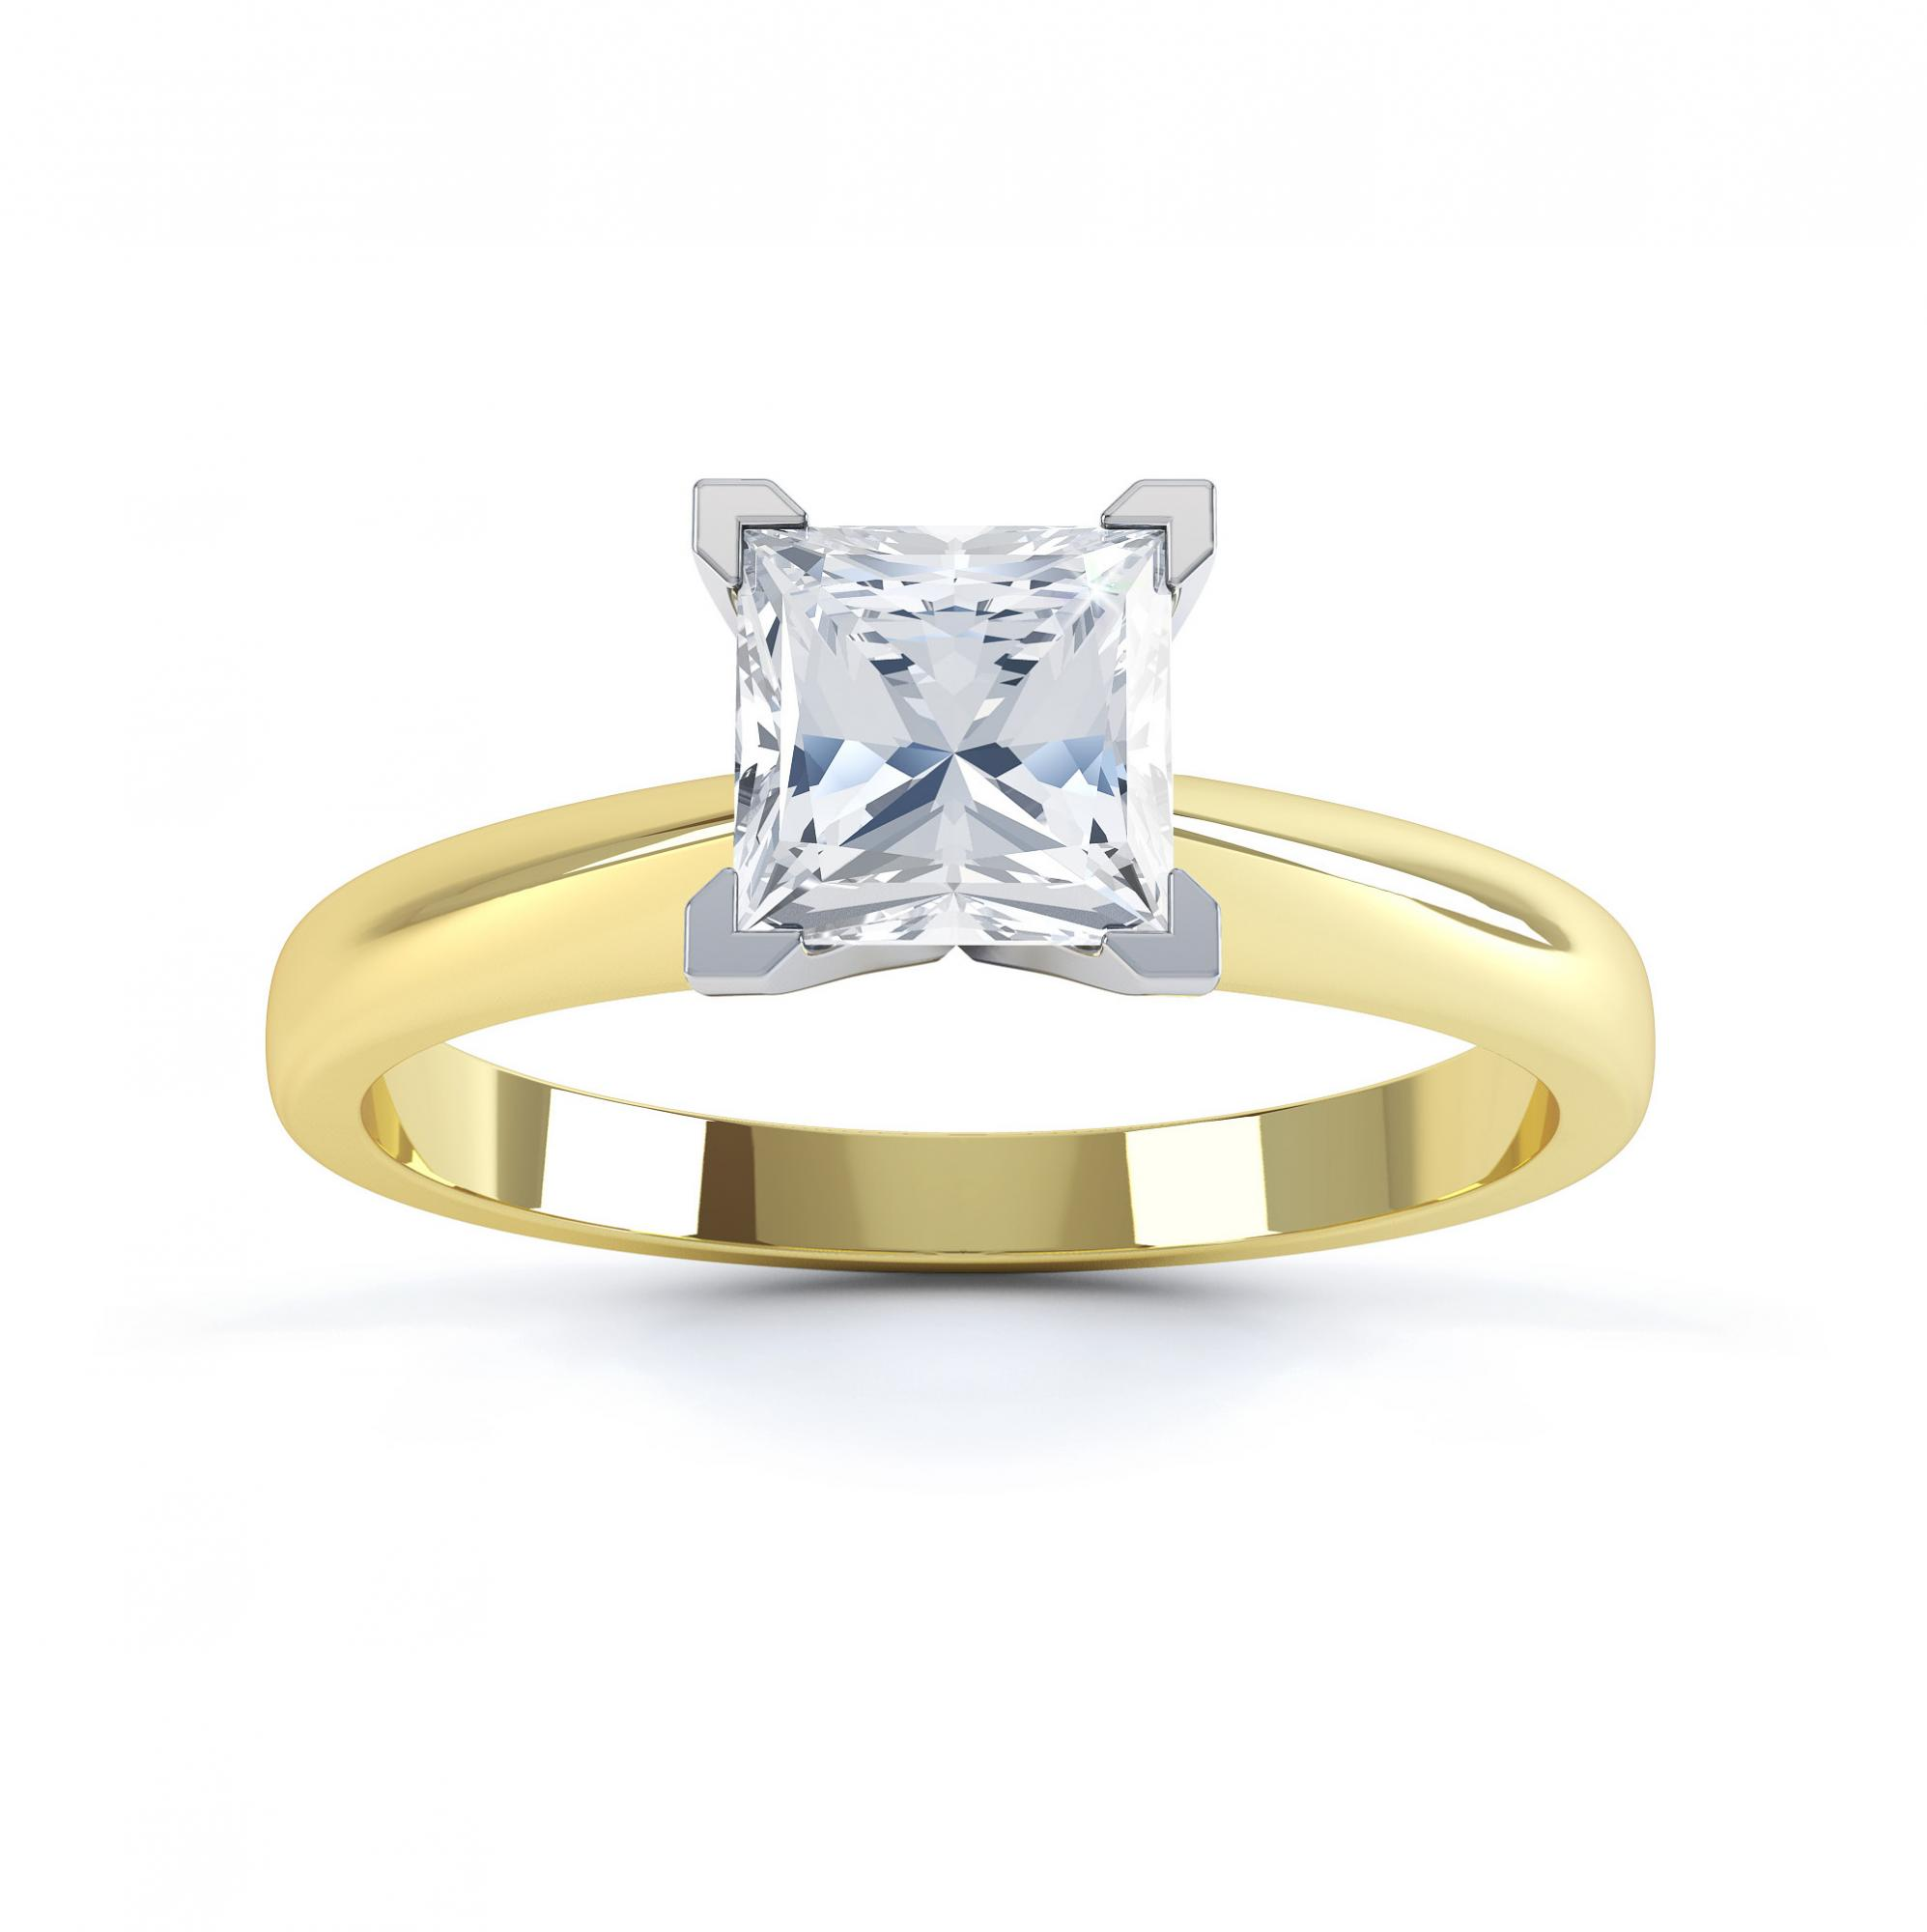 4 Claw Princess cut engagement ring Aurora top view yellow gold